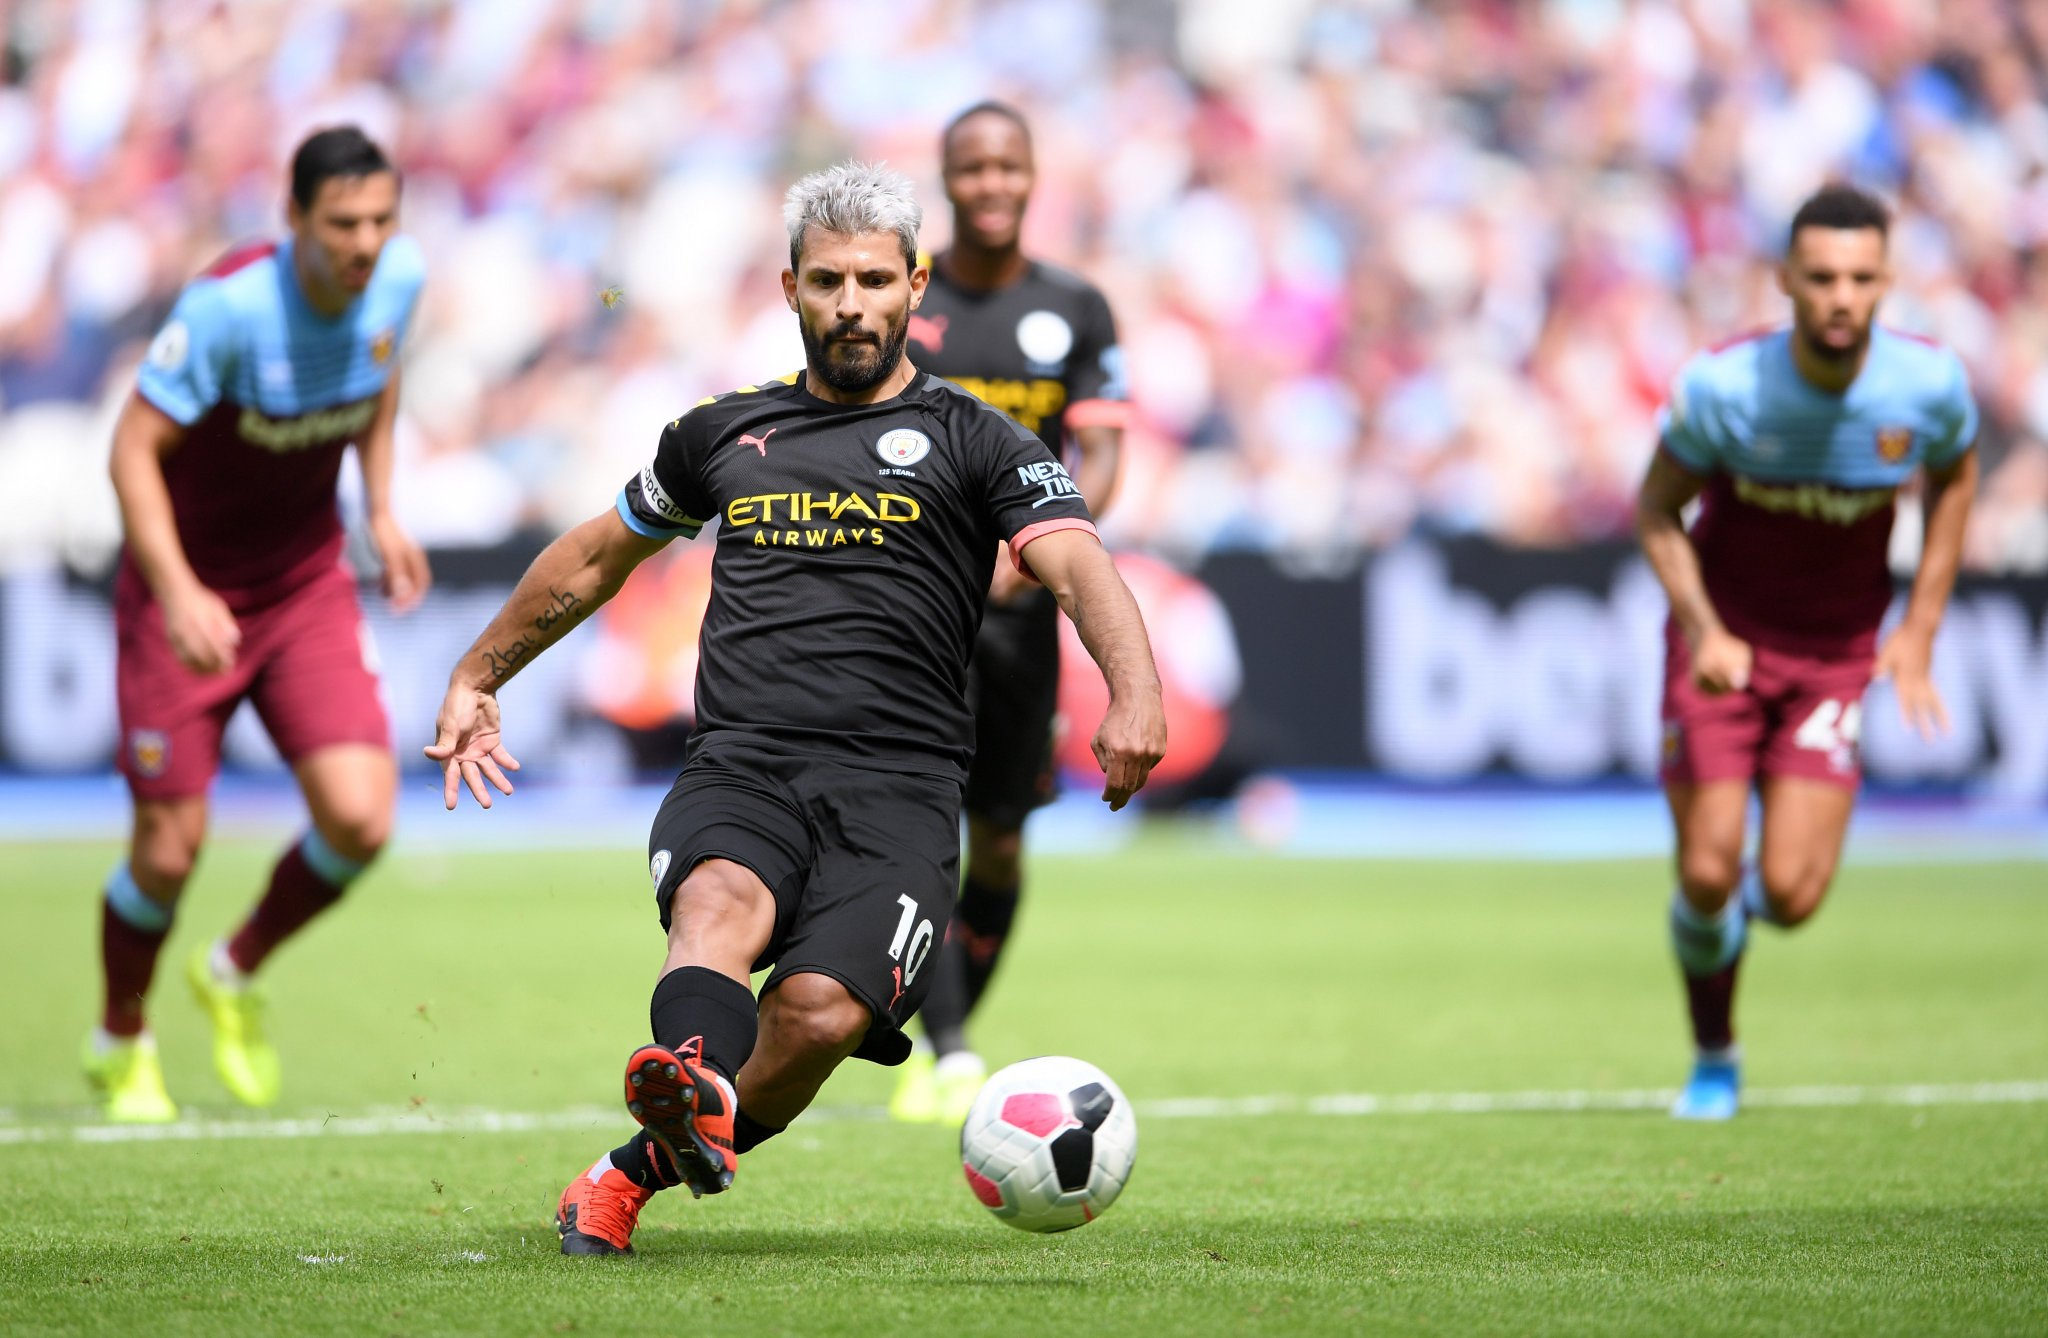 Pep Guardiola 'slams' VAR despite thrashing West Ham in Premier League opener